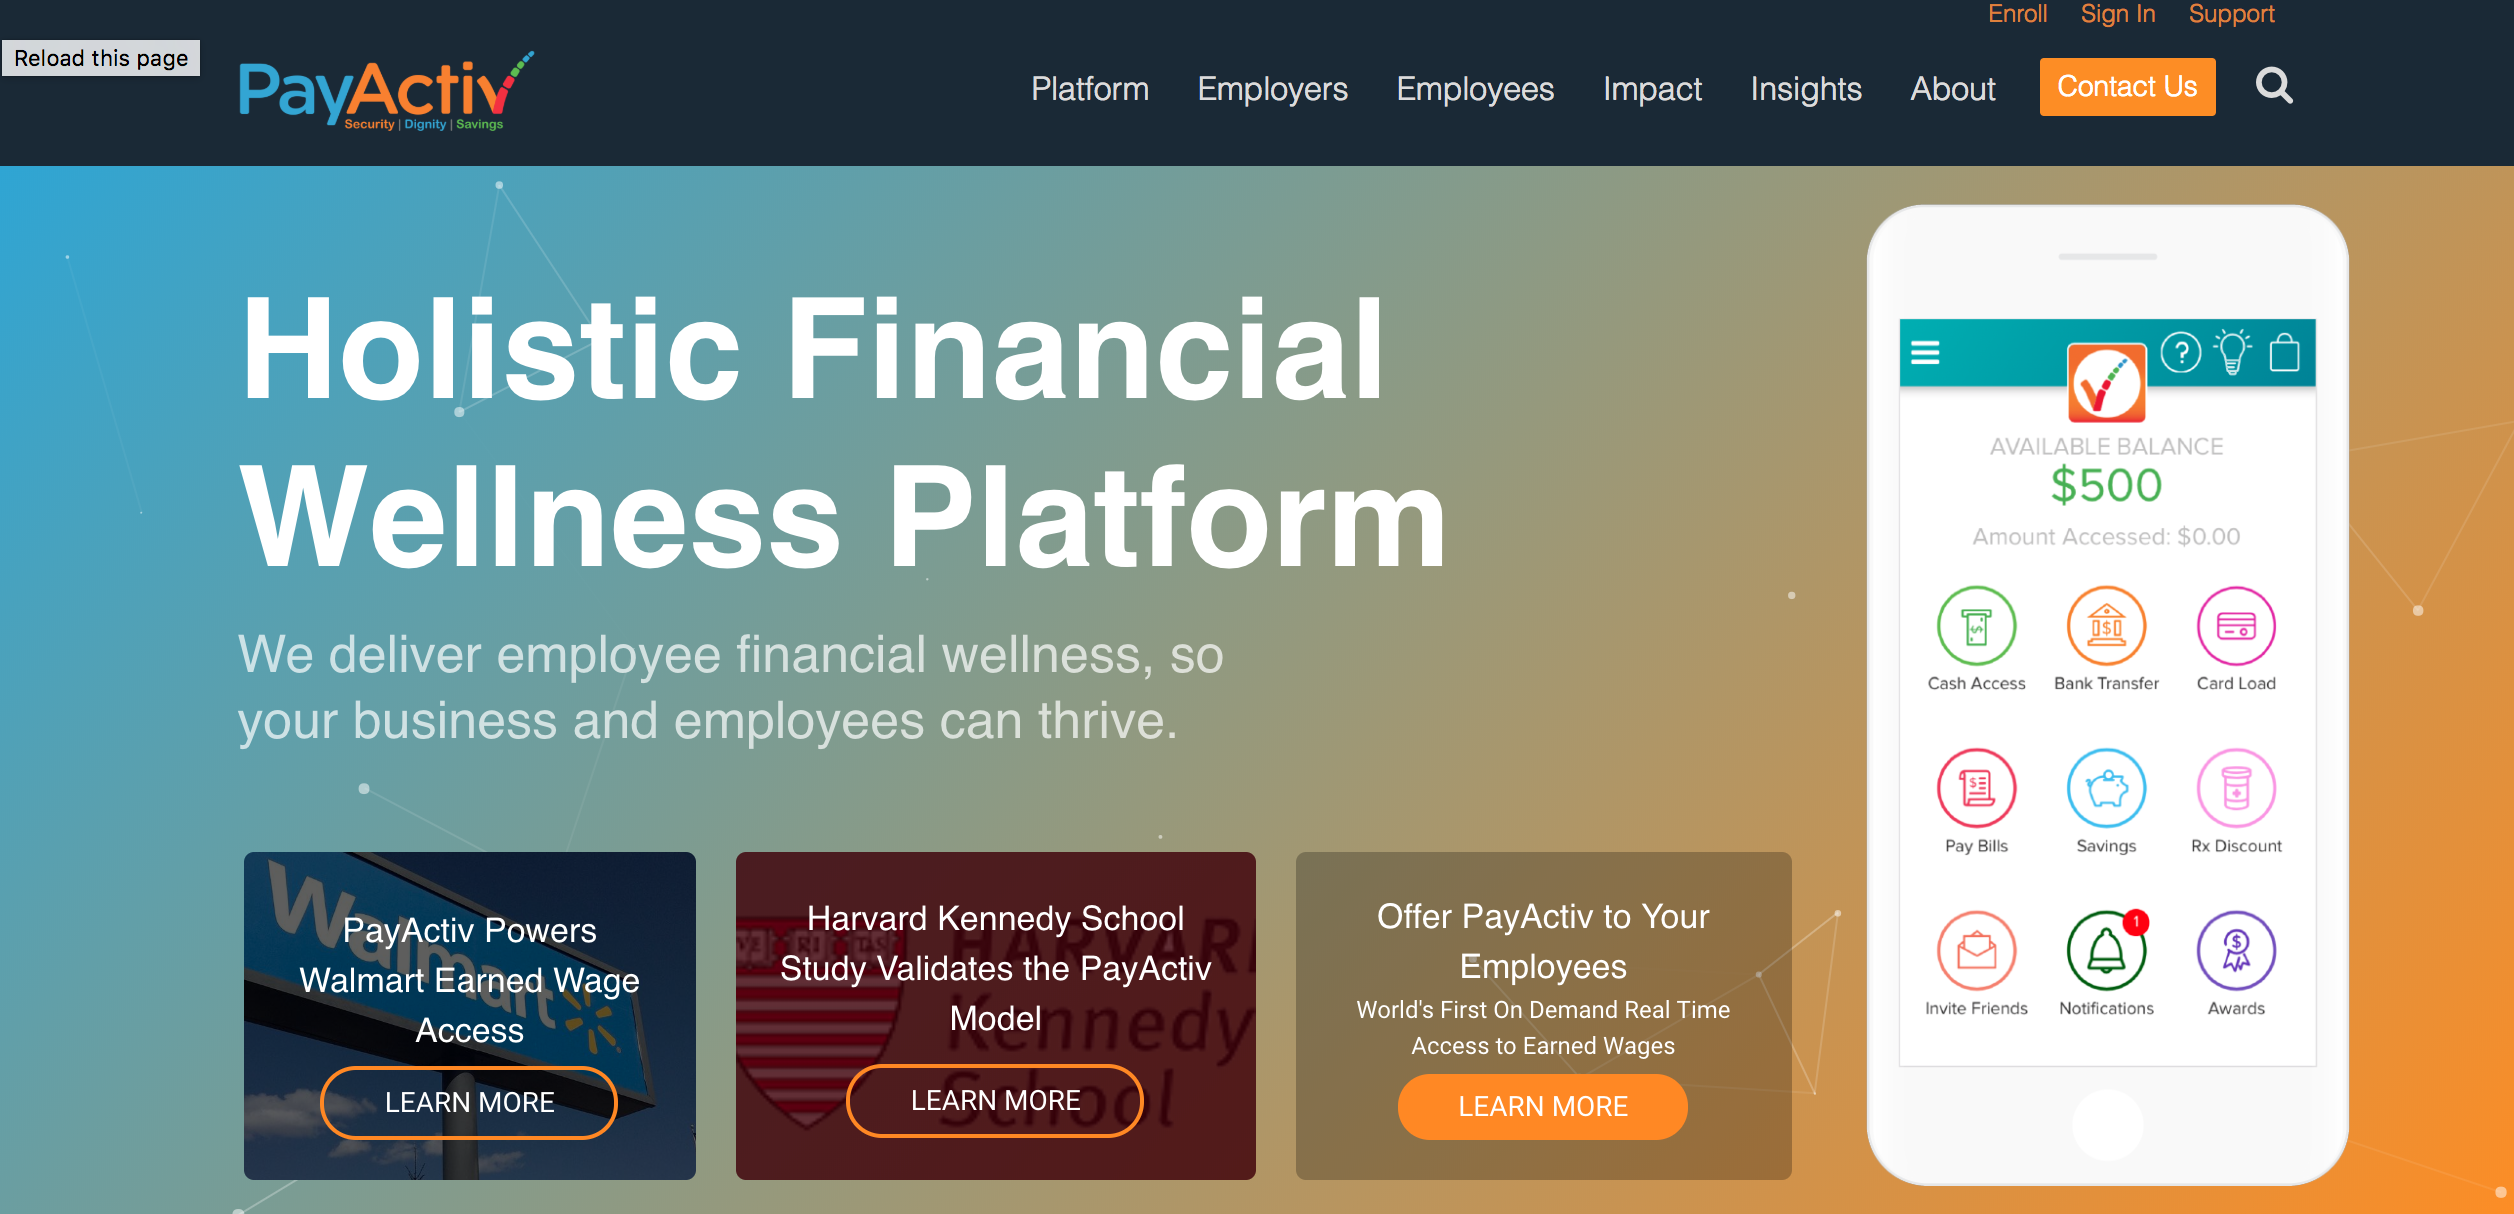 PayActiv More than Doubles its Funding with Fresh $20 Million